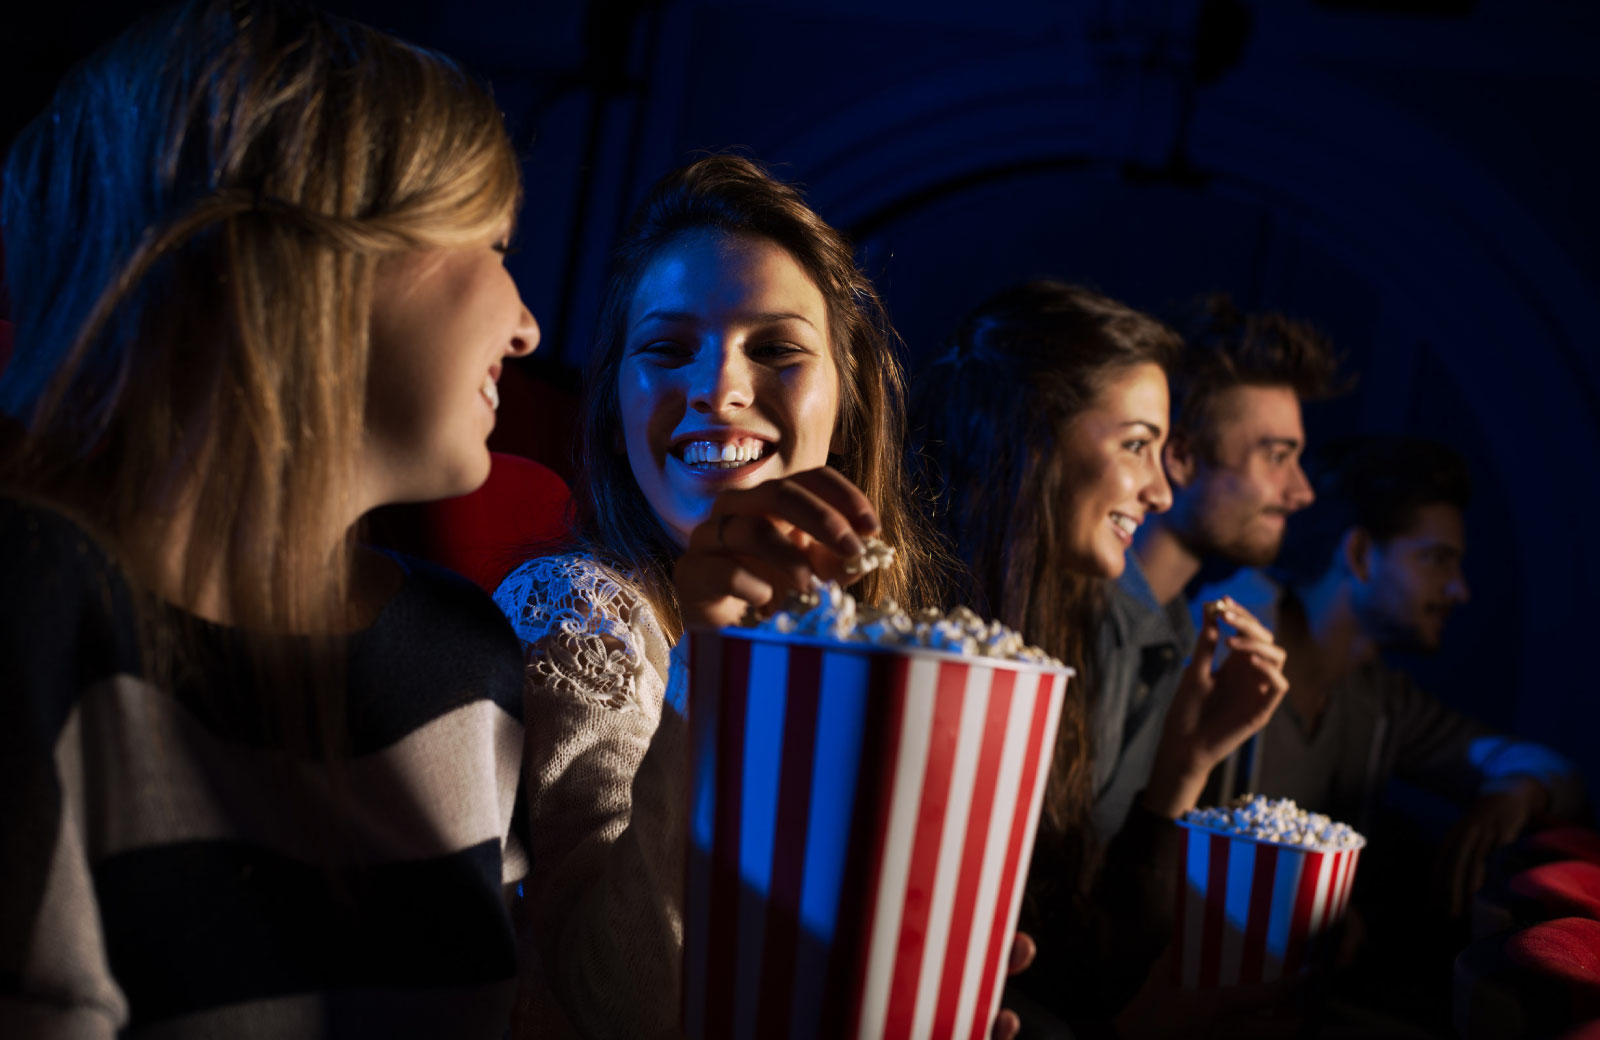 group of people watching movie in a cinema eating popcorn